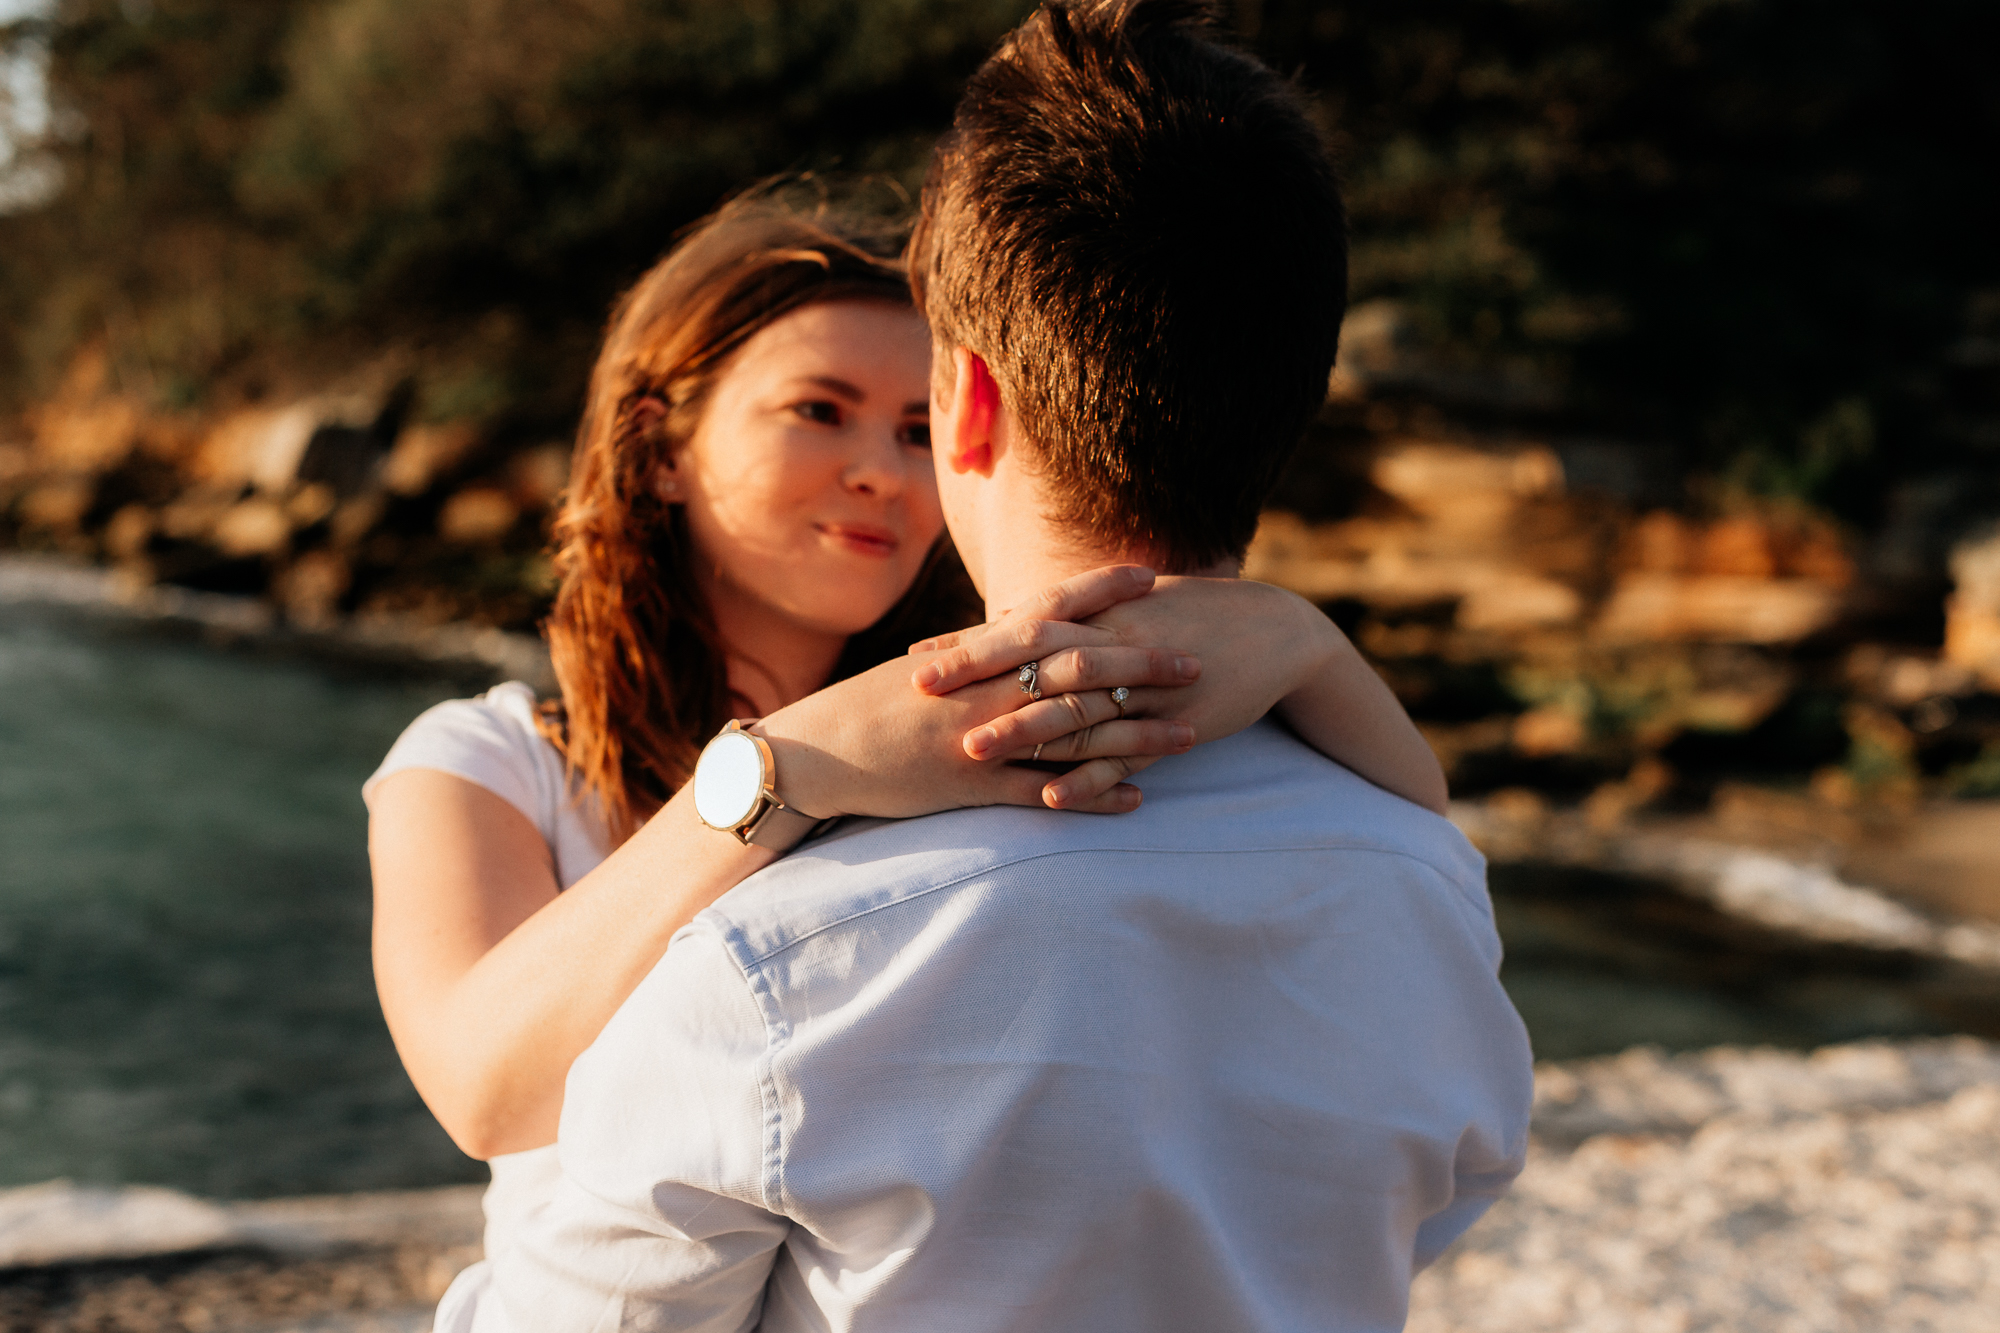 Amanzi and Steven_Engagement_Sydney_Holly Medway Photography-17.JPG